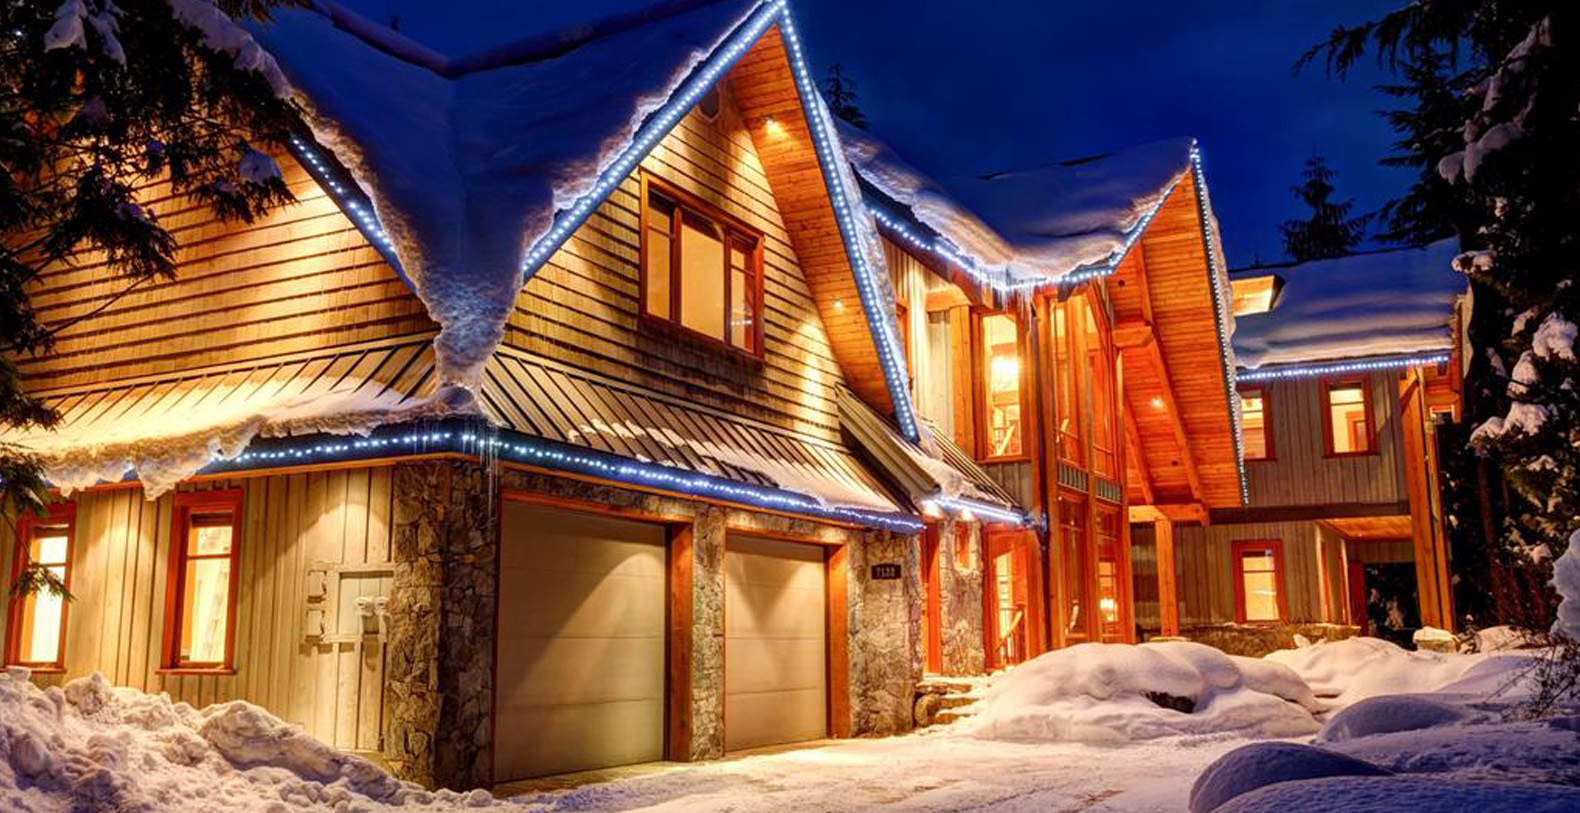 Timber Luxury Chalet Holiday Rental